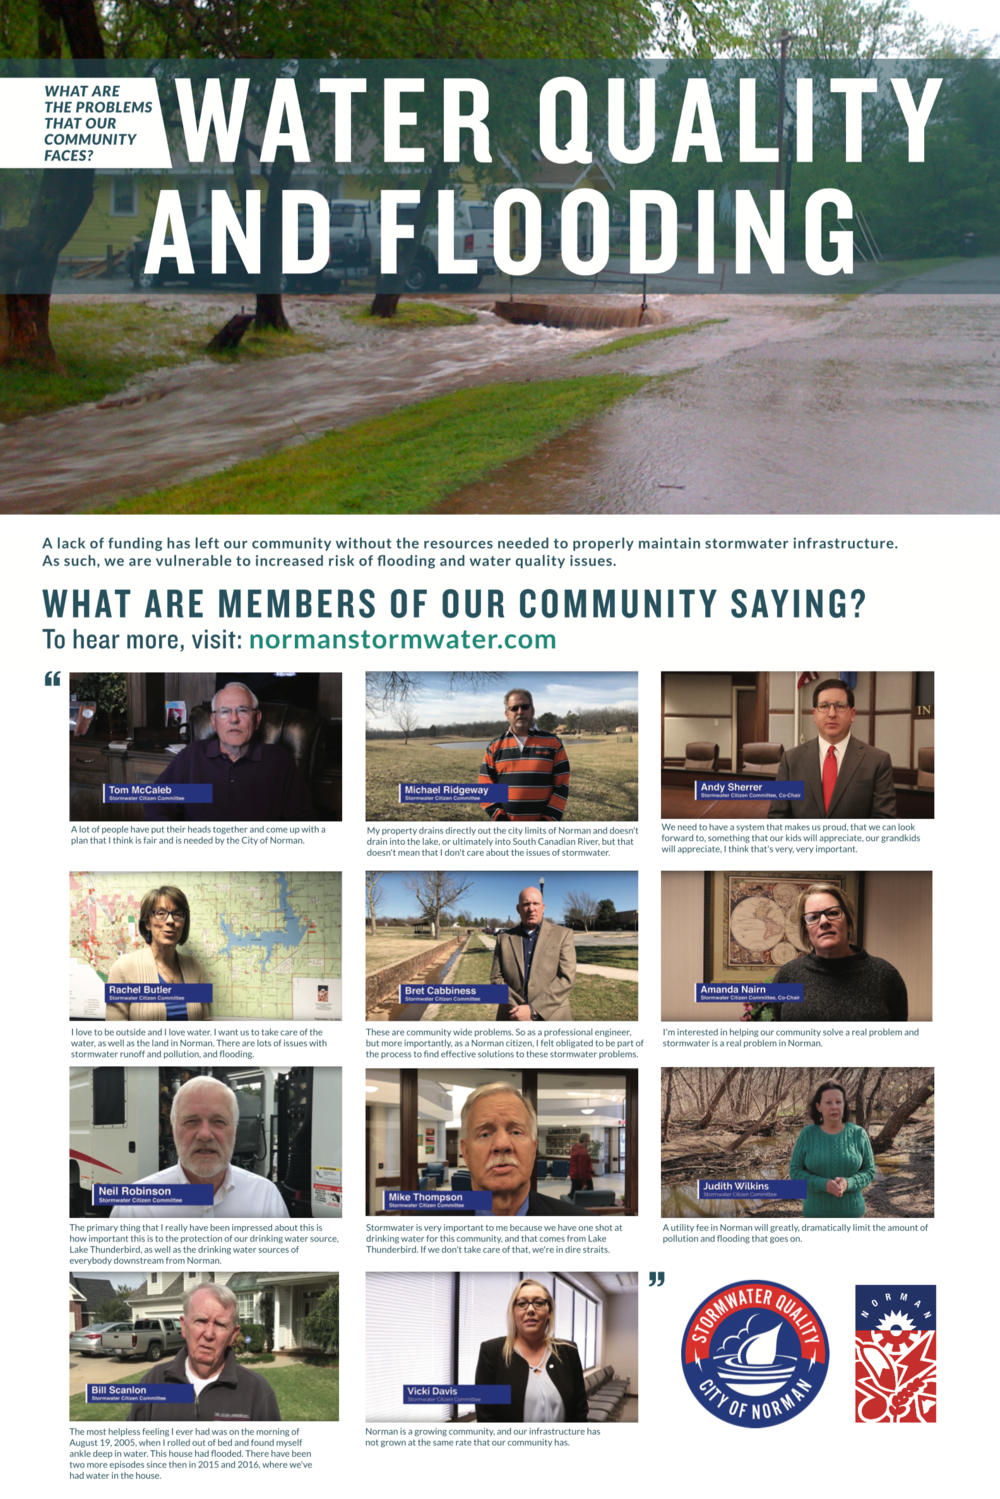 Water Quality and Flooding - What are the problems that our community faces?